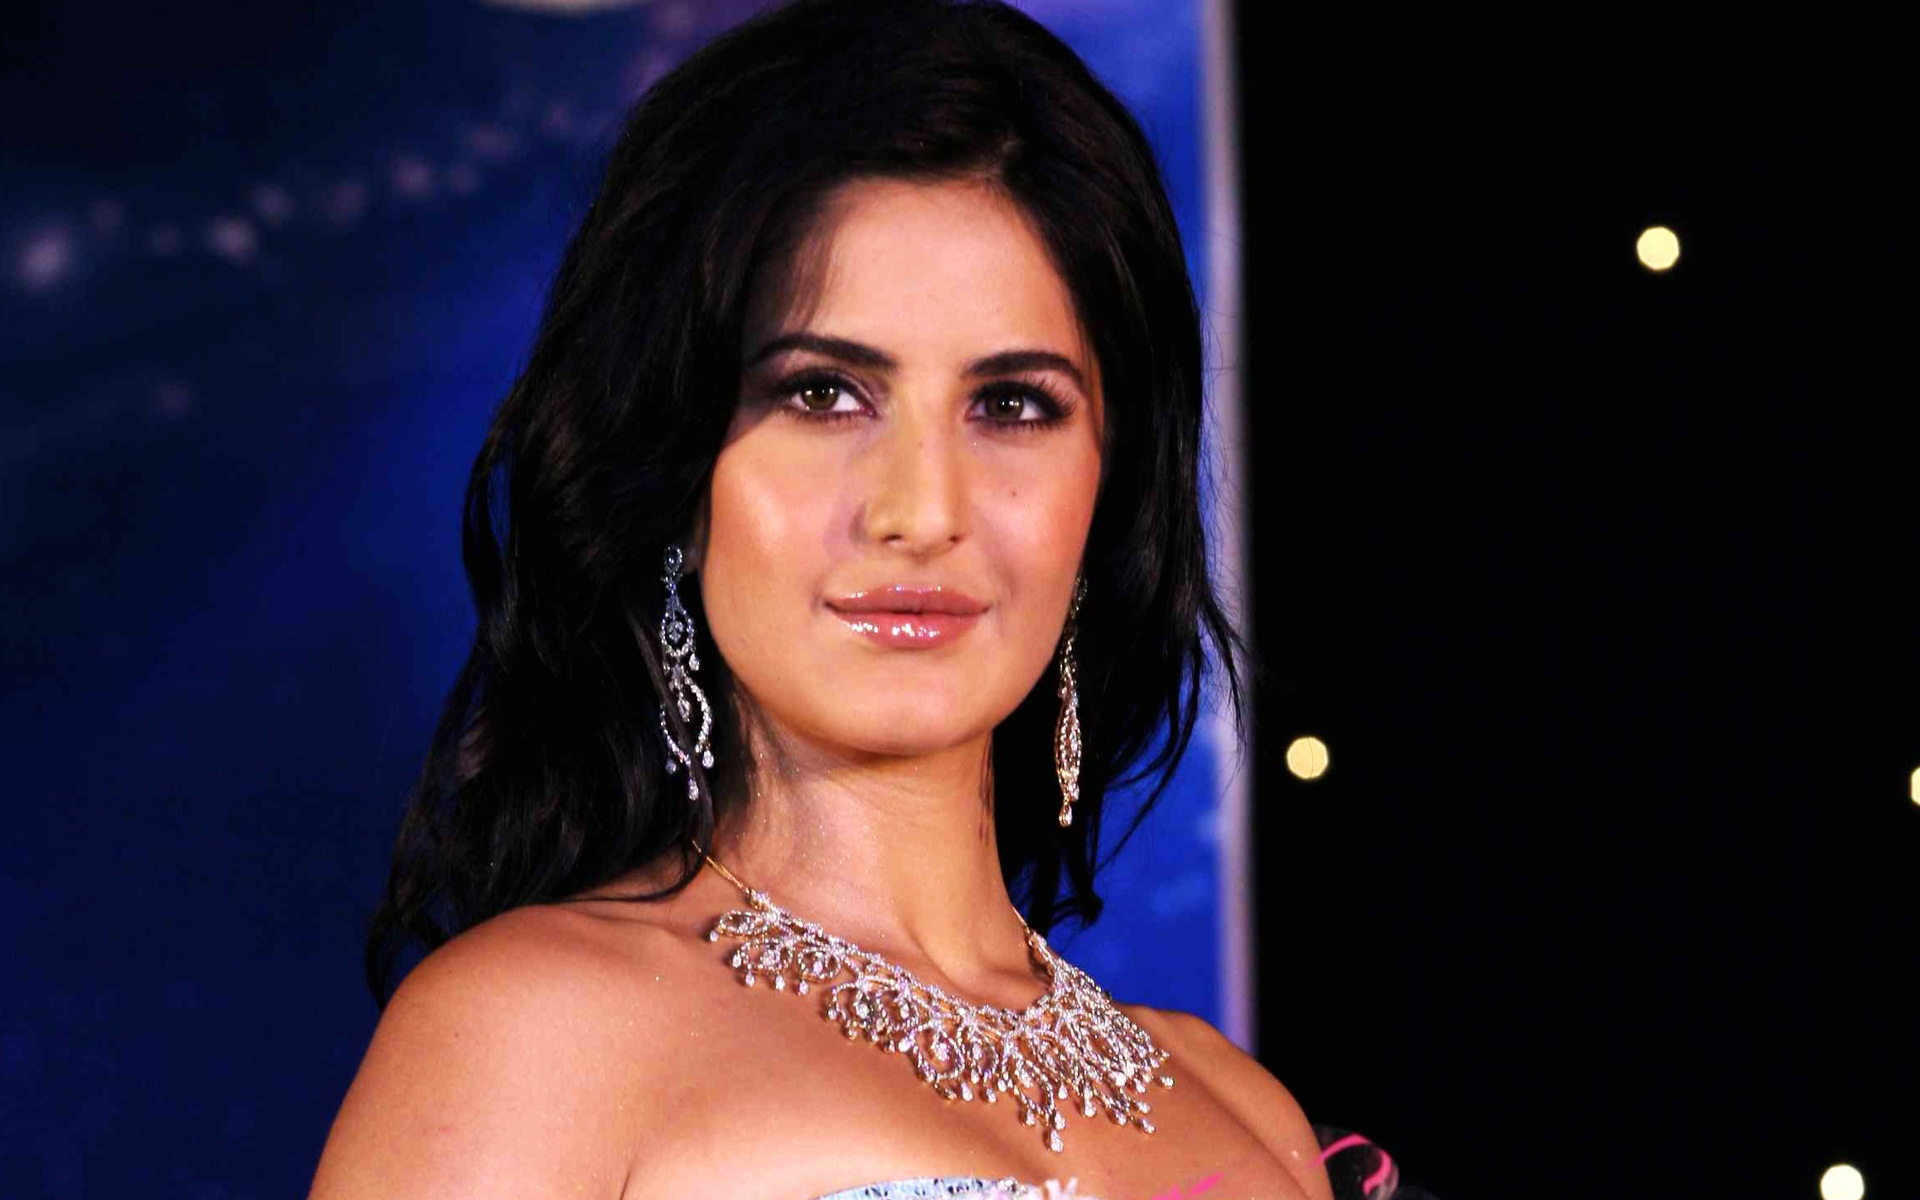 Indian Actress Katrina Kaif